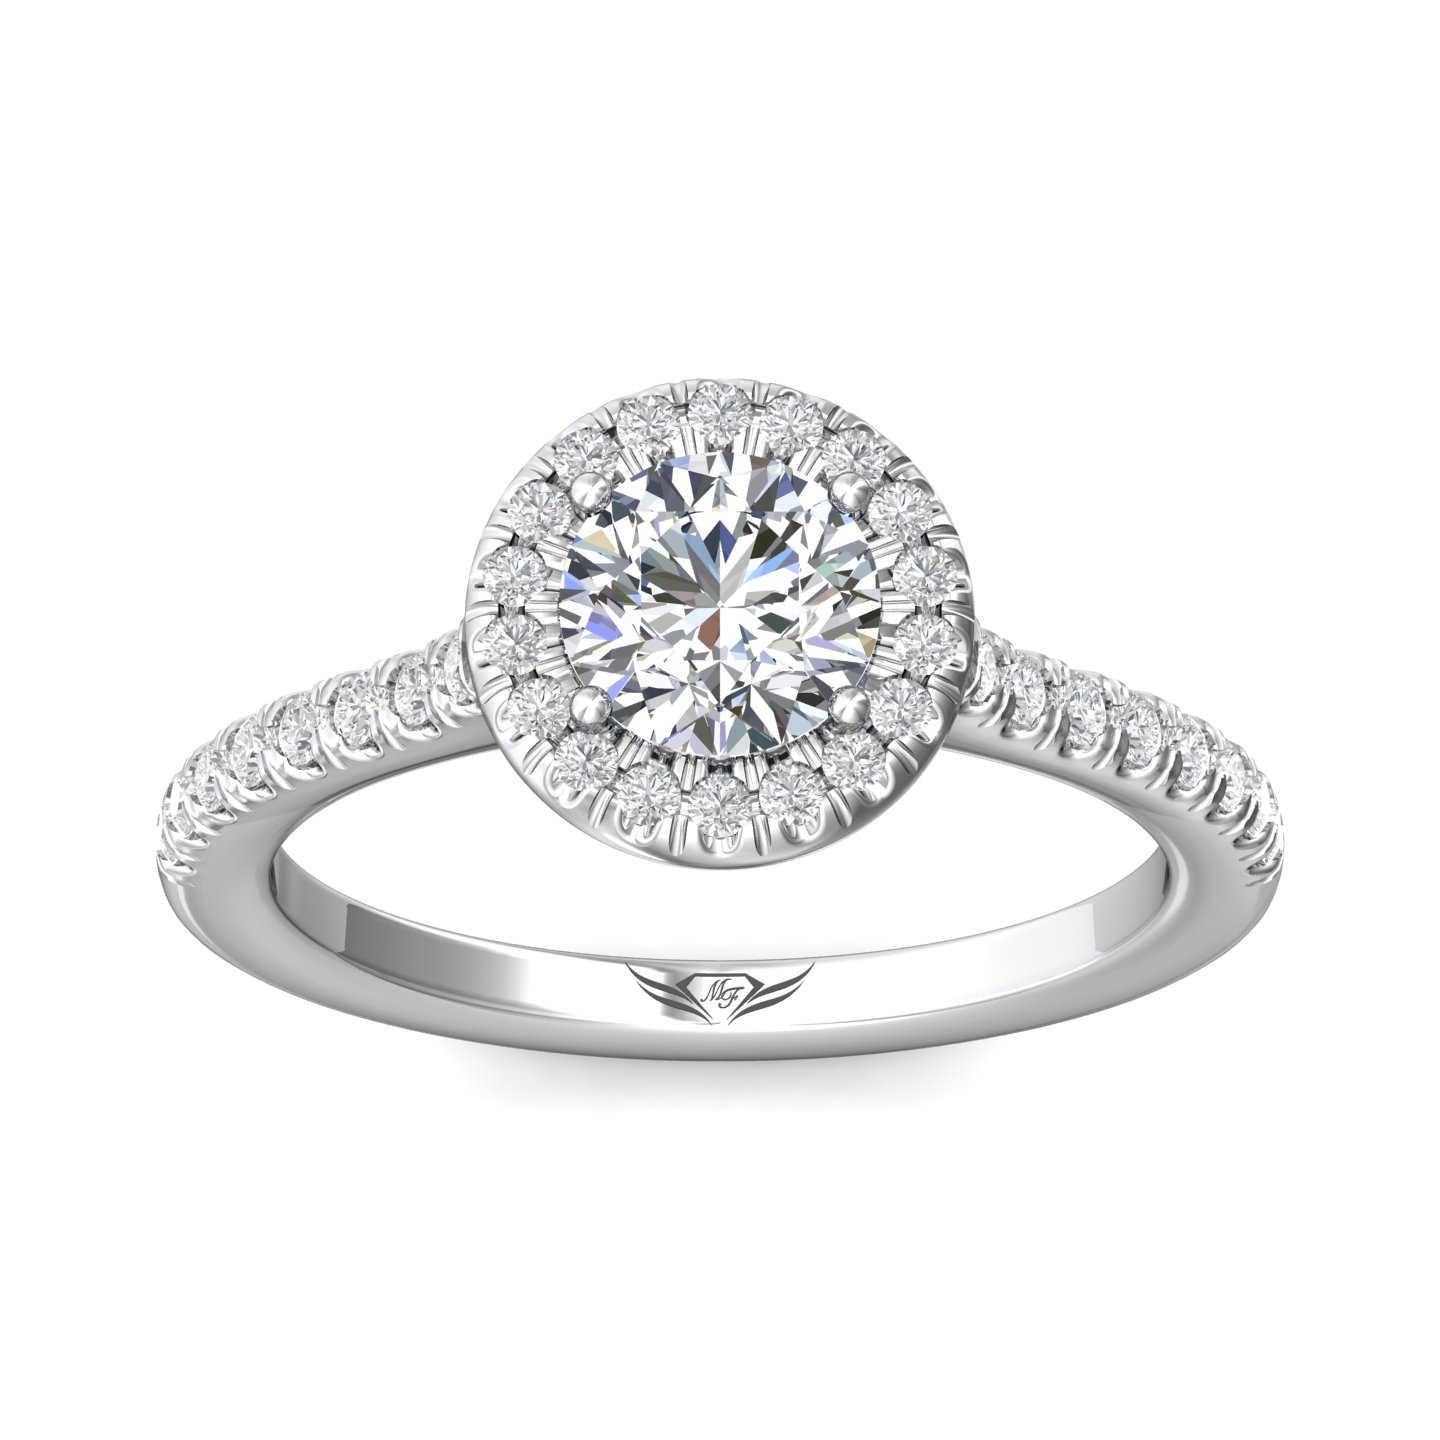 Rings - 14K White Gold FlyerFit Micropave Halo Engagement Ring - image 3